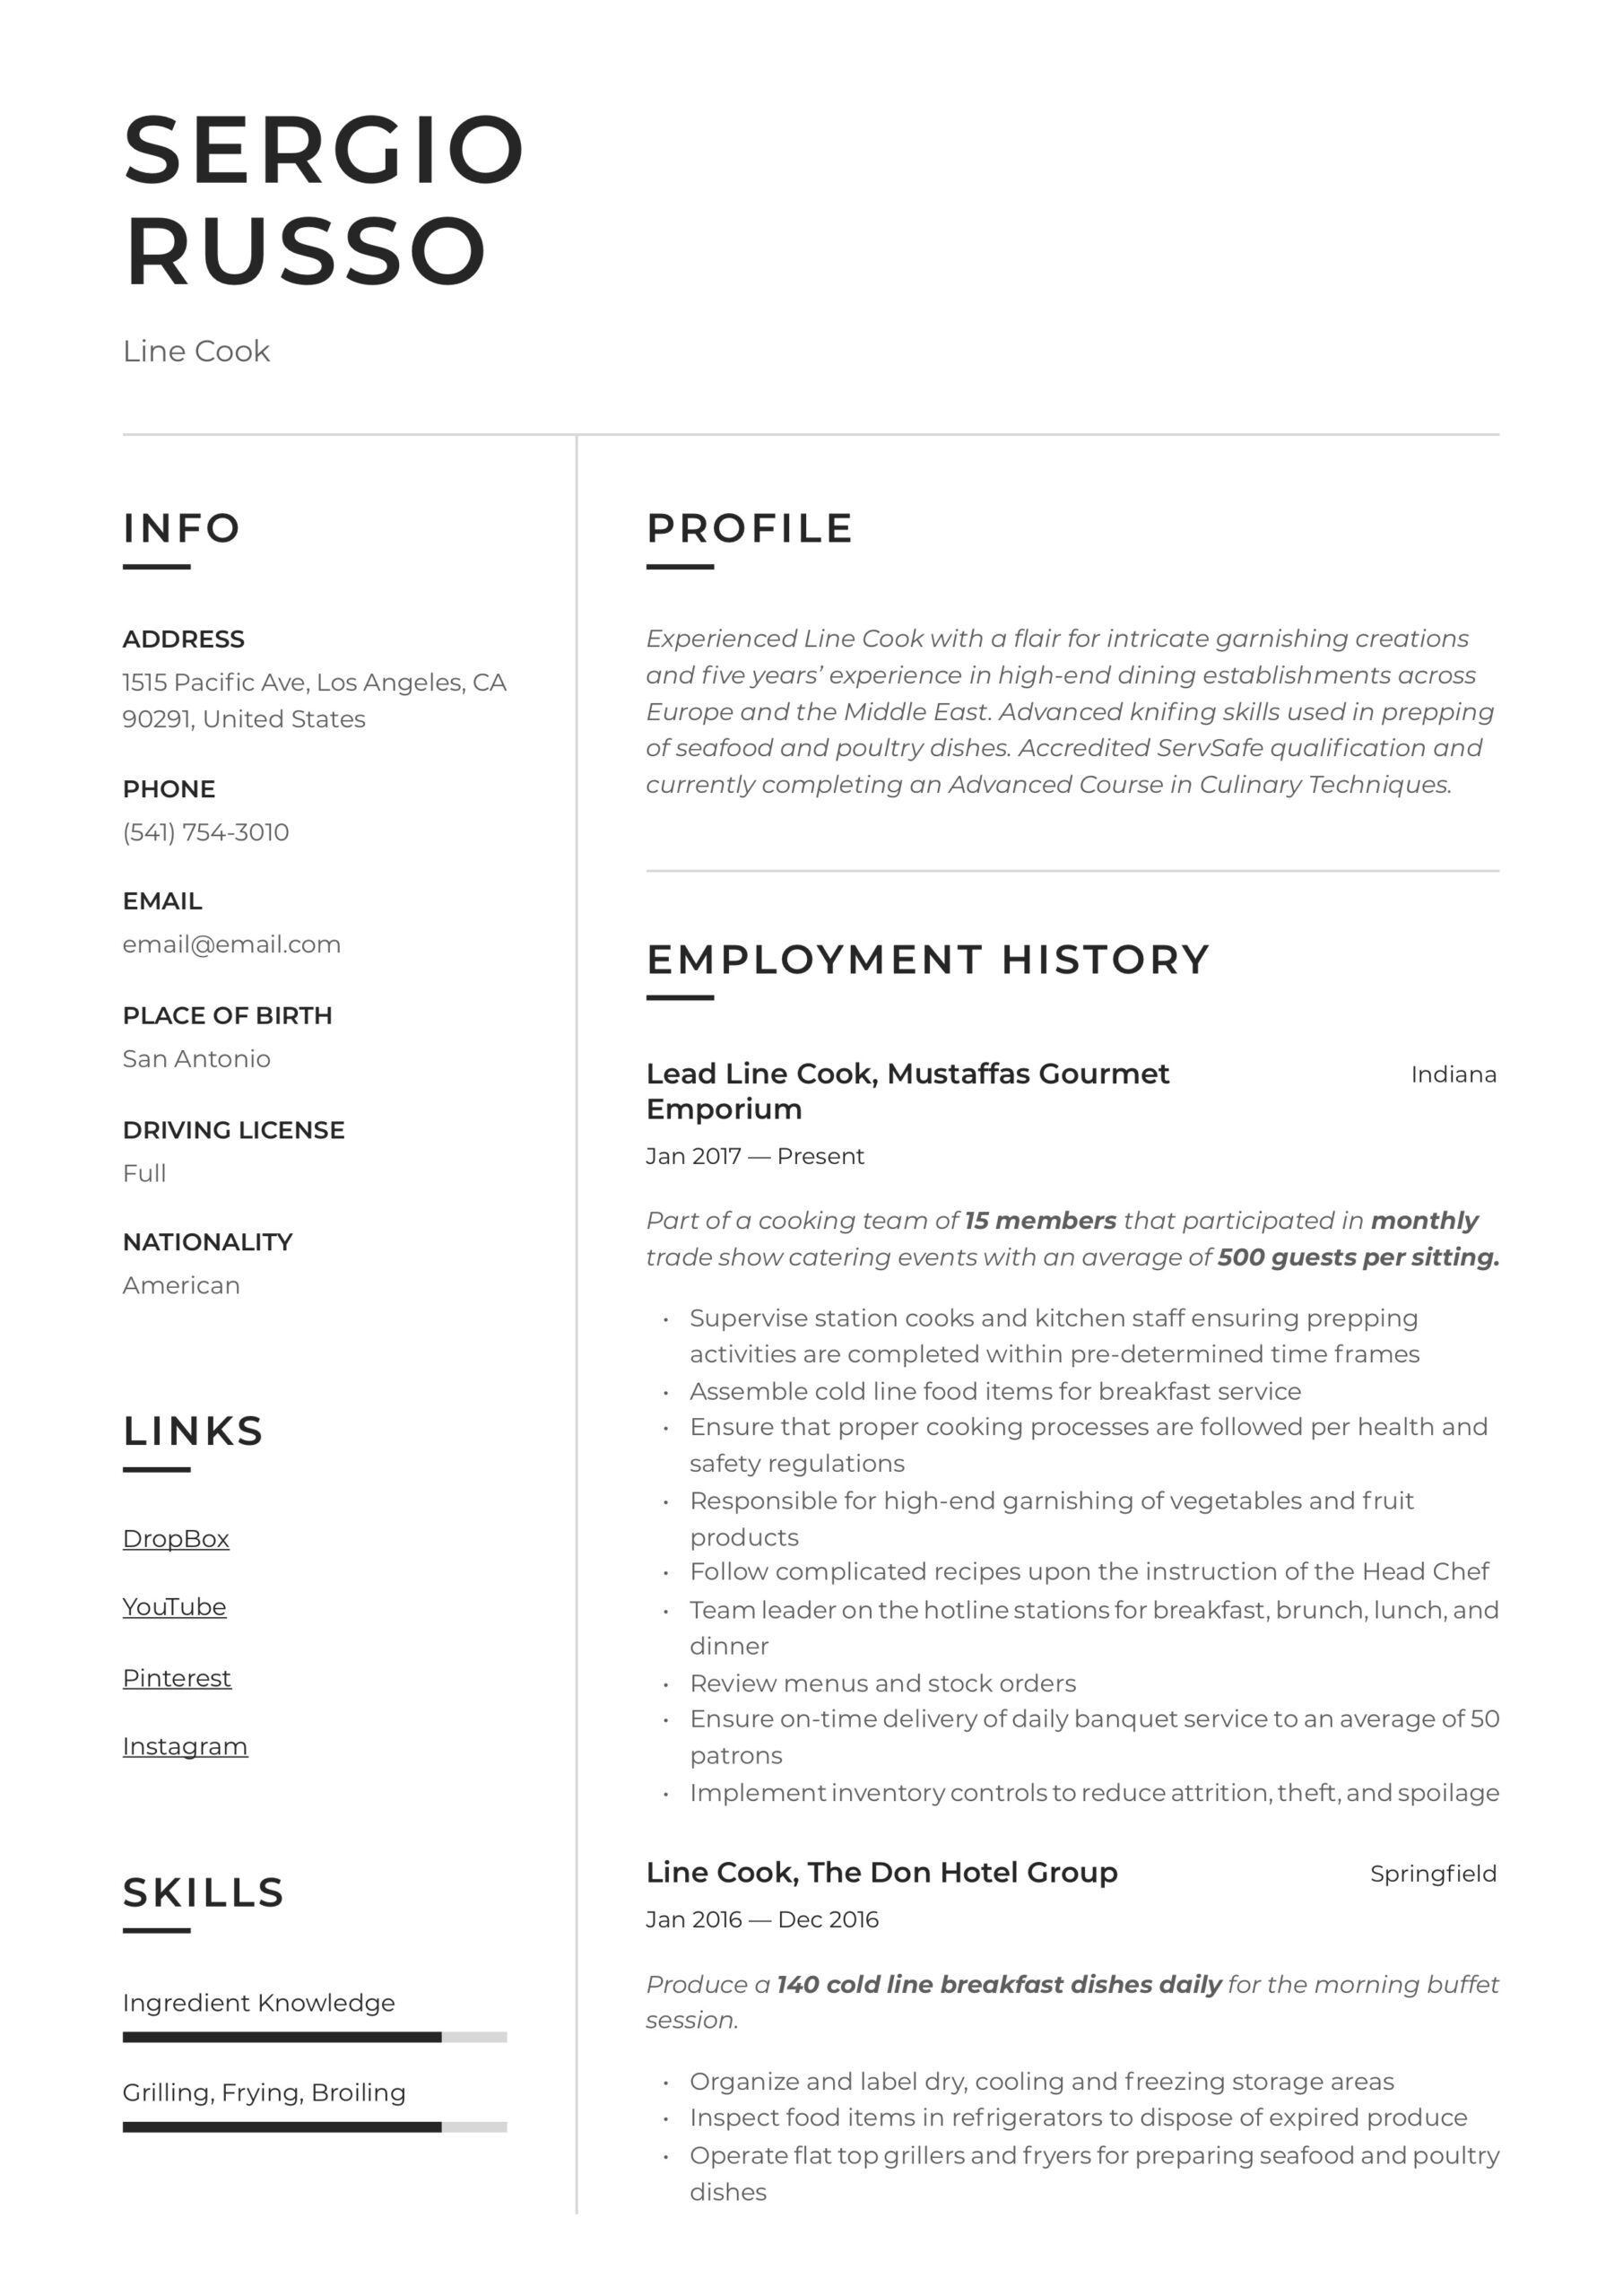 line resume writing guide examples entry level culinary bms salon manager summary student Resume Entry Level Culinary Resume Examples